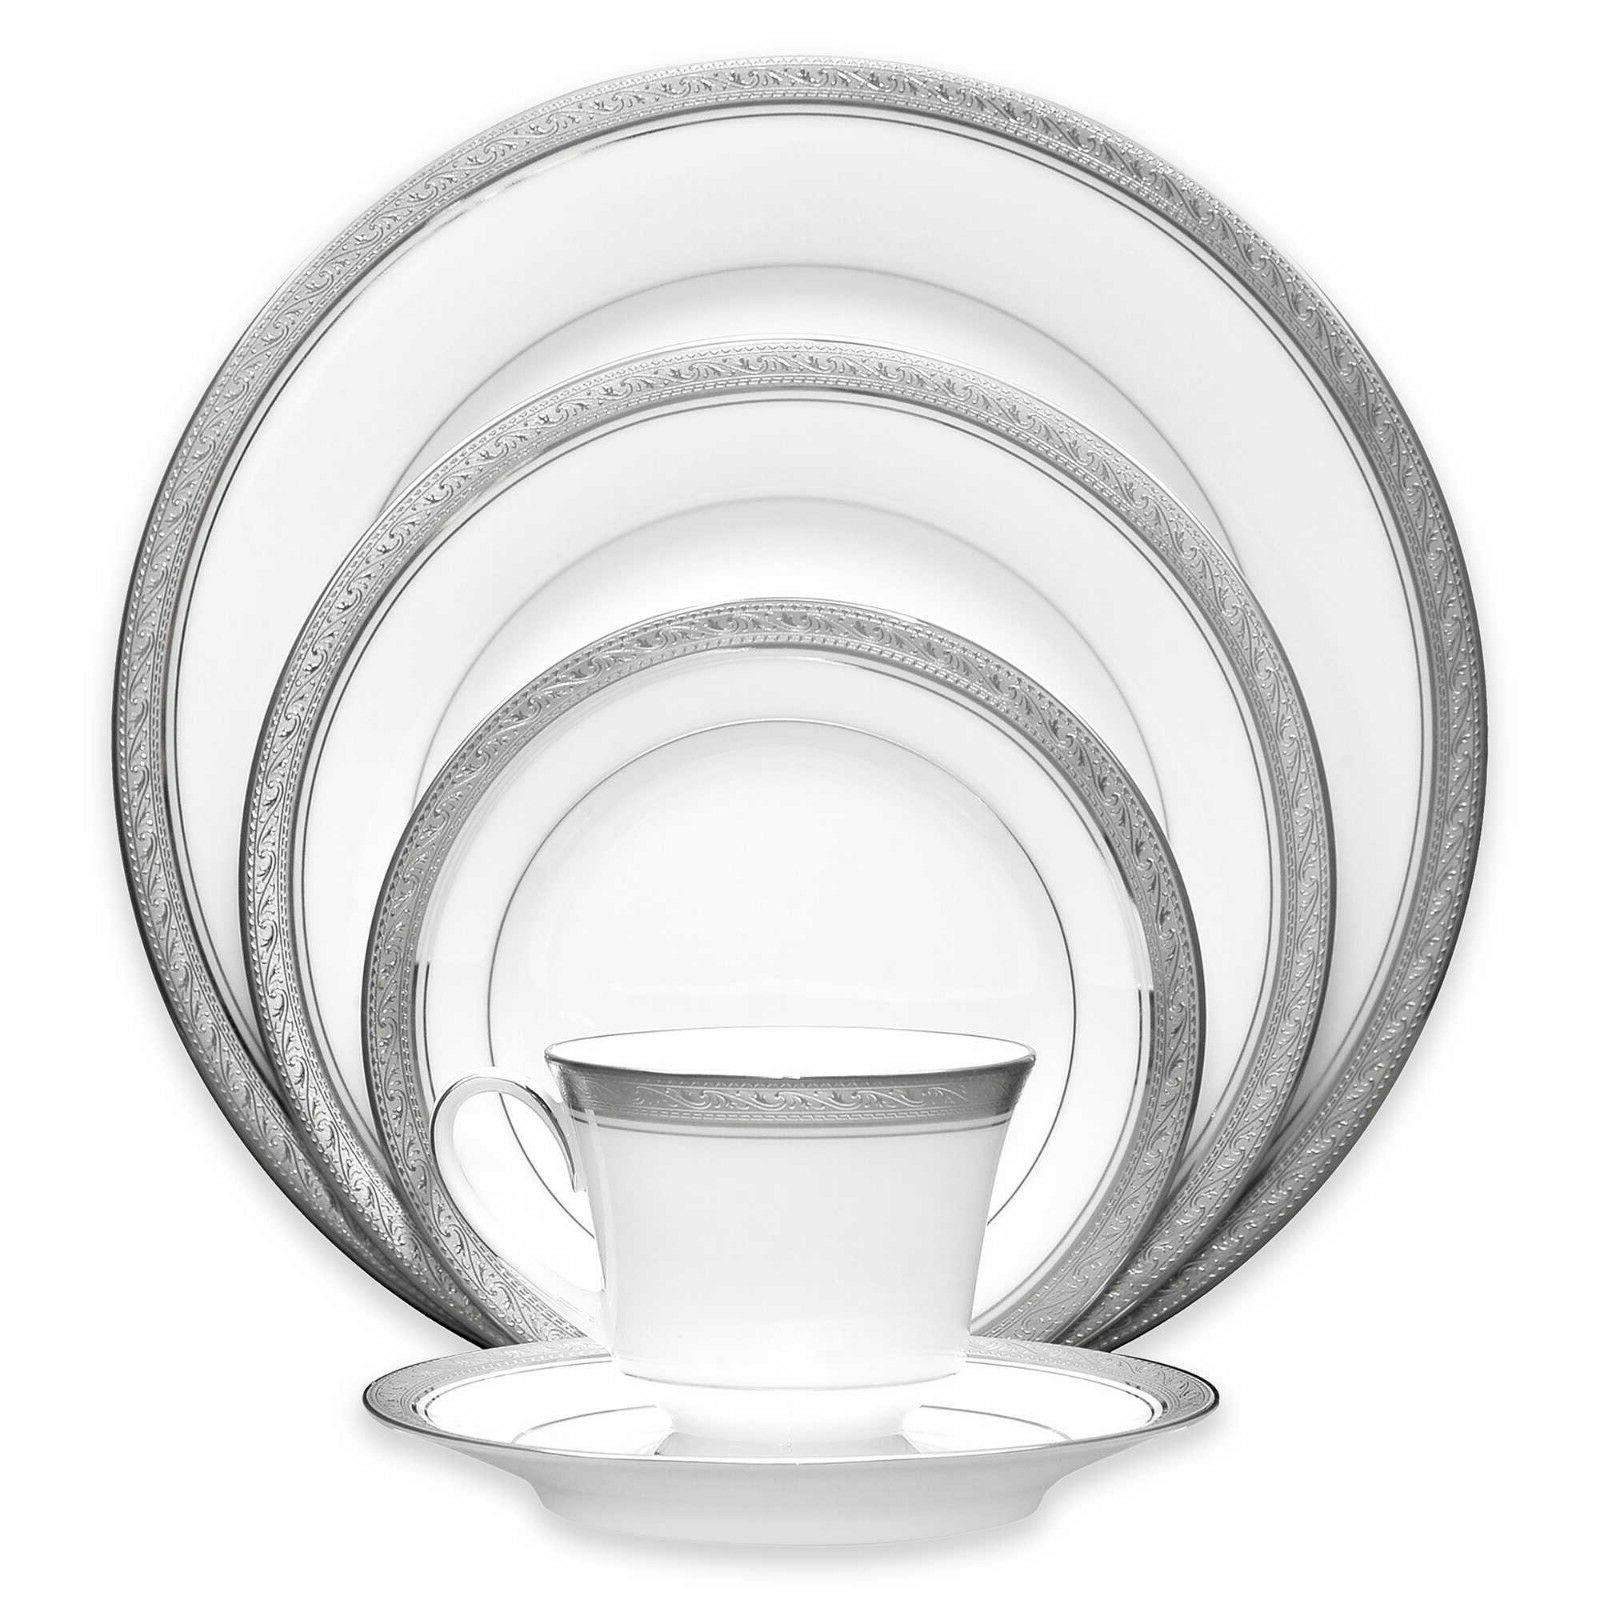 Noritake Dinnerware with